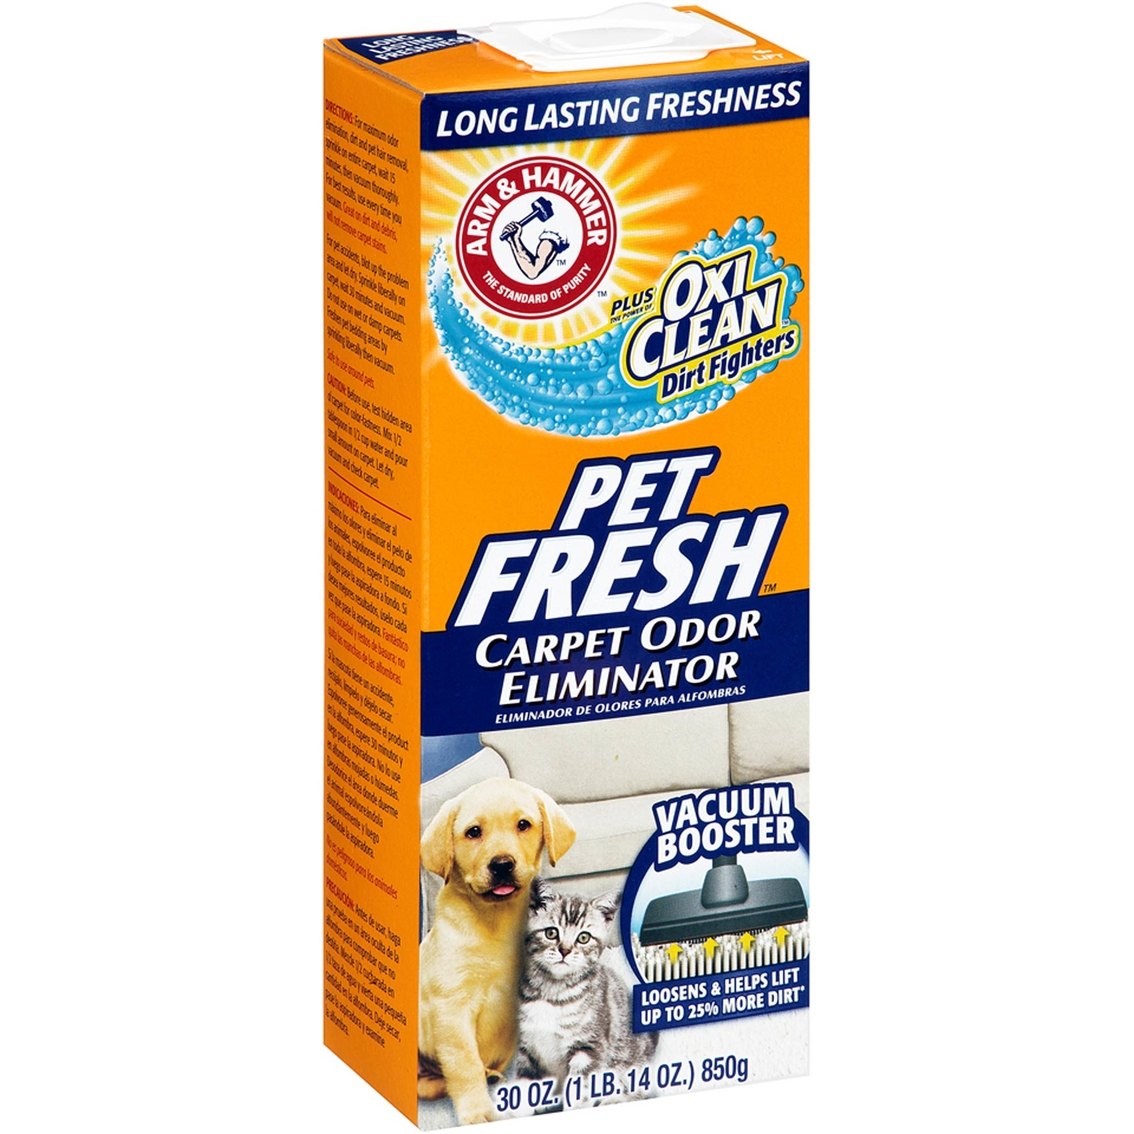 Arm Amp Hammer Plus Oxiclean Dirt Fighters Pet Fresh Carpet